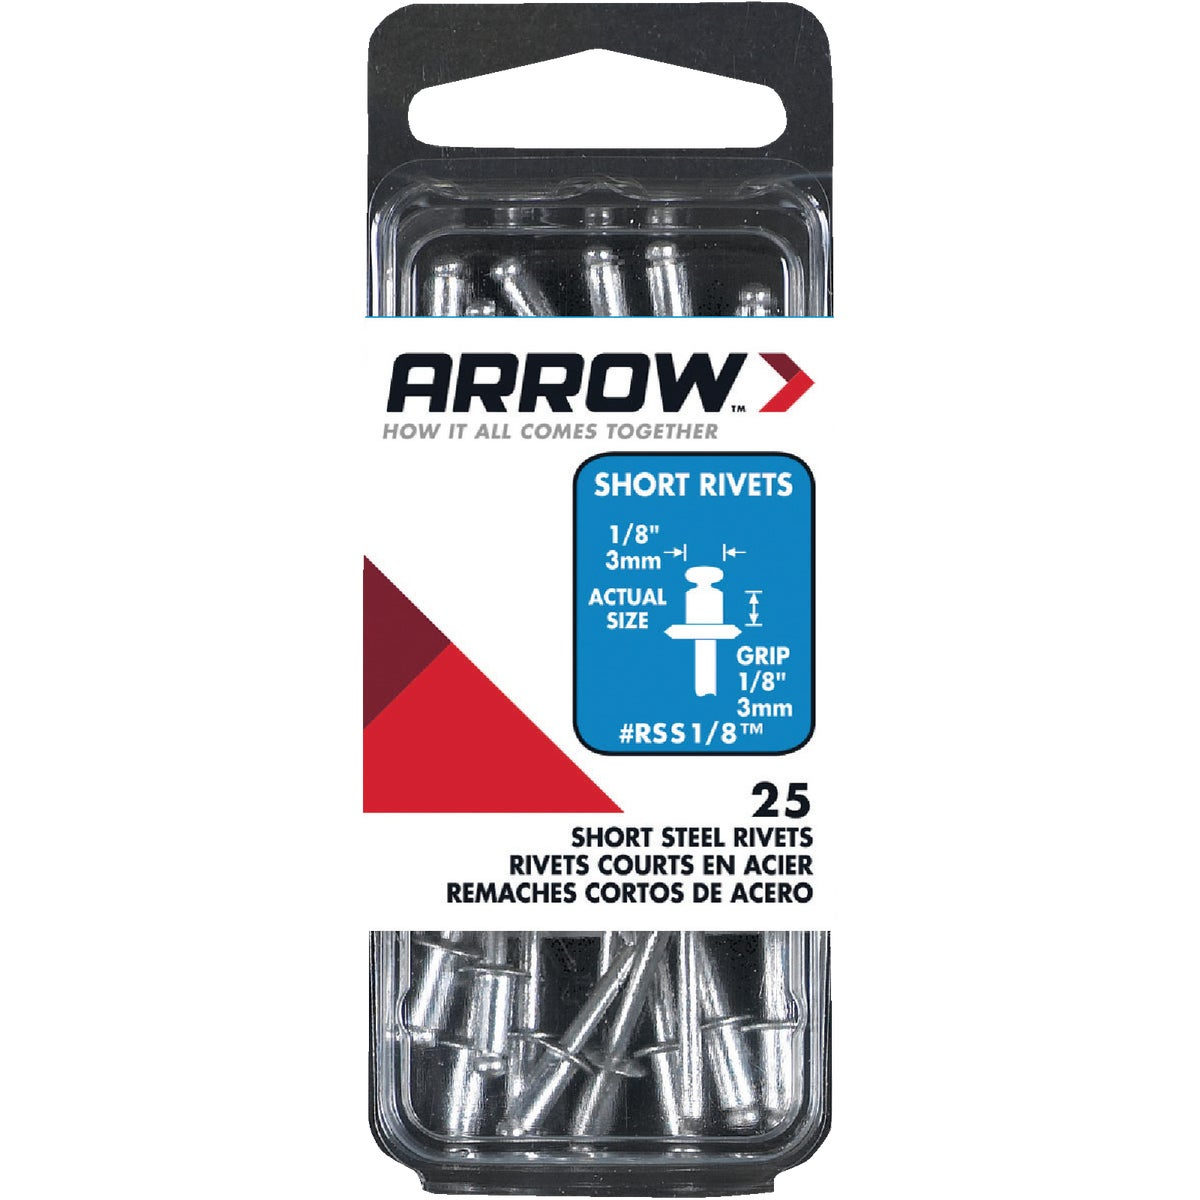 1/8X1/8 STL RIVET - RSS1/8 by Arrow Fastener Co